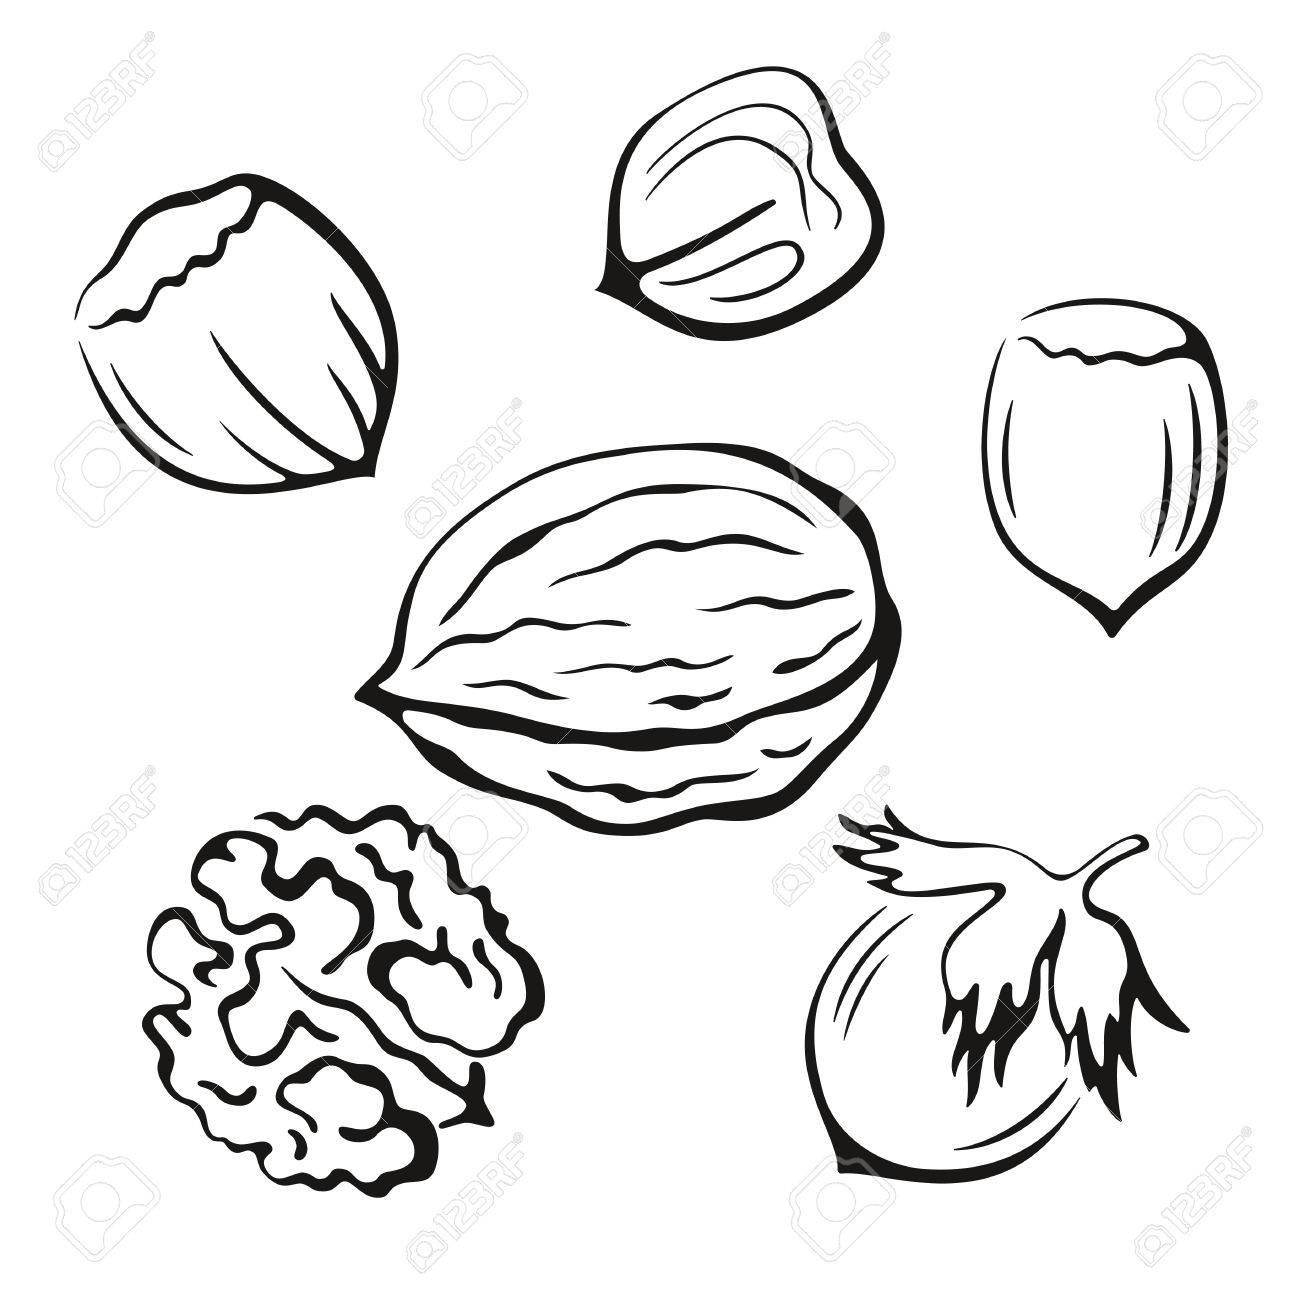 Nuts Set, Walnut and Hazel Monochrome Black Pictograms Icons Isolated on White Background. Vector - 49892818